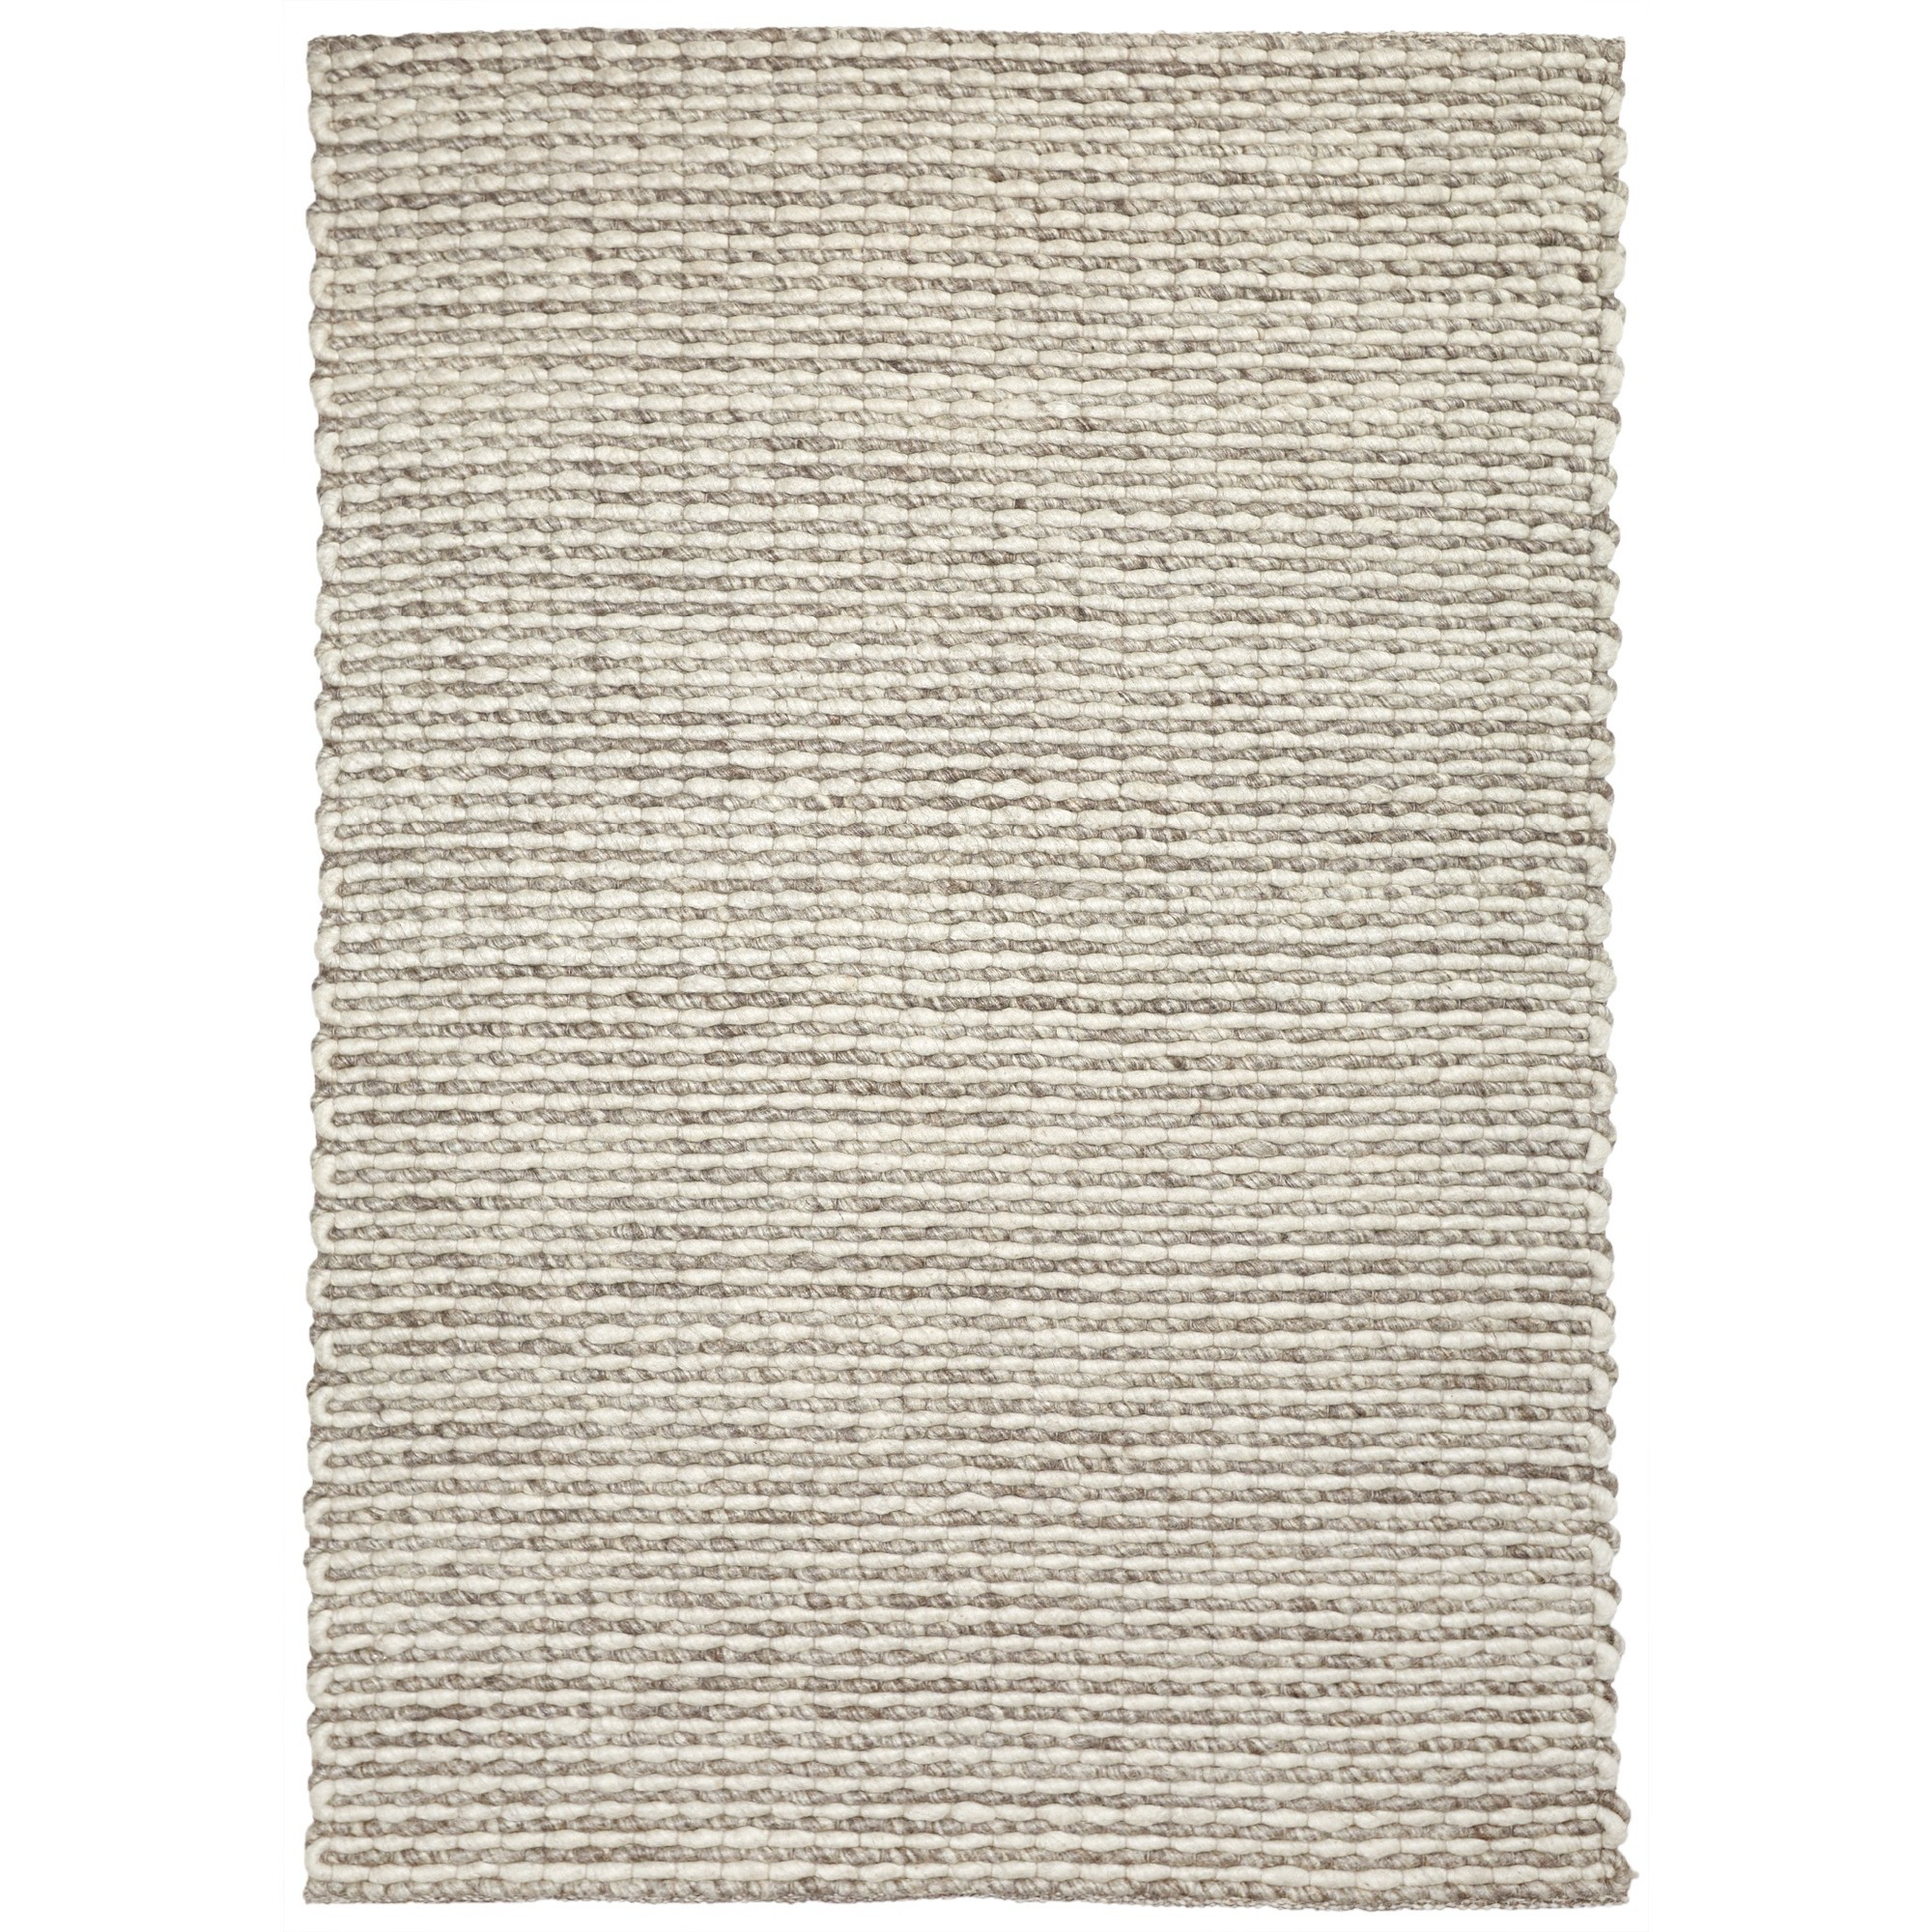 Lisbon Handwoven Wool Rug, 225x155cm, Ivory / Brown